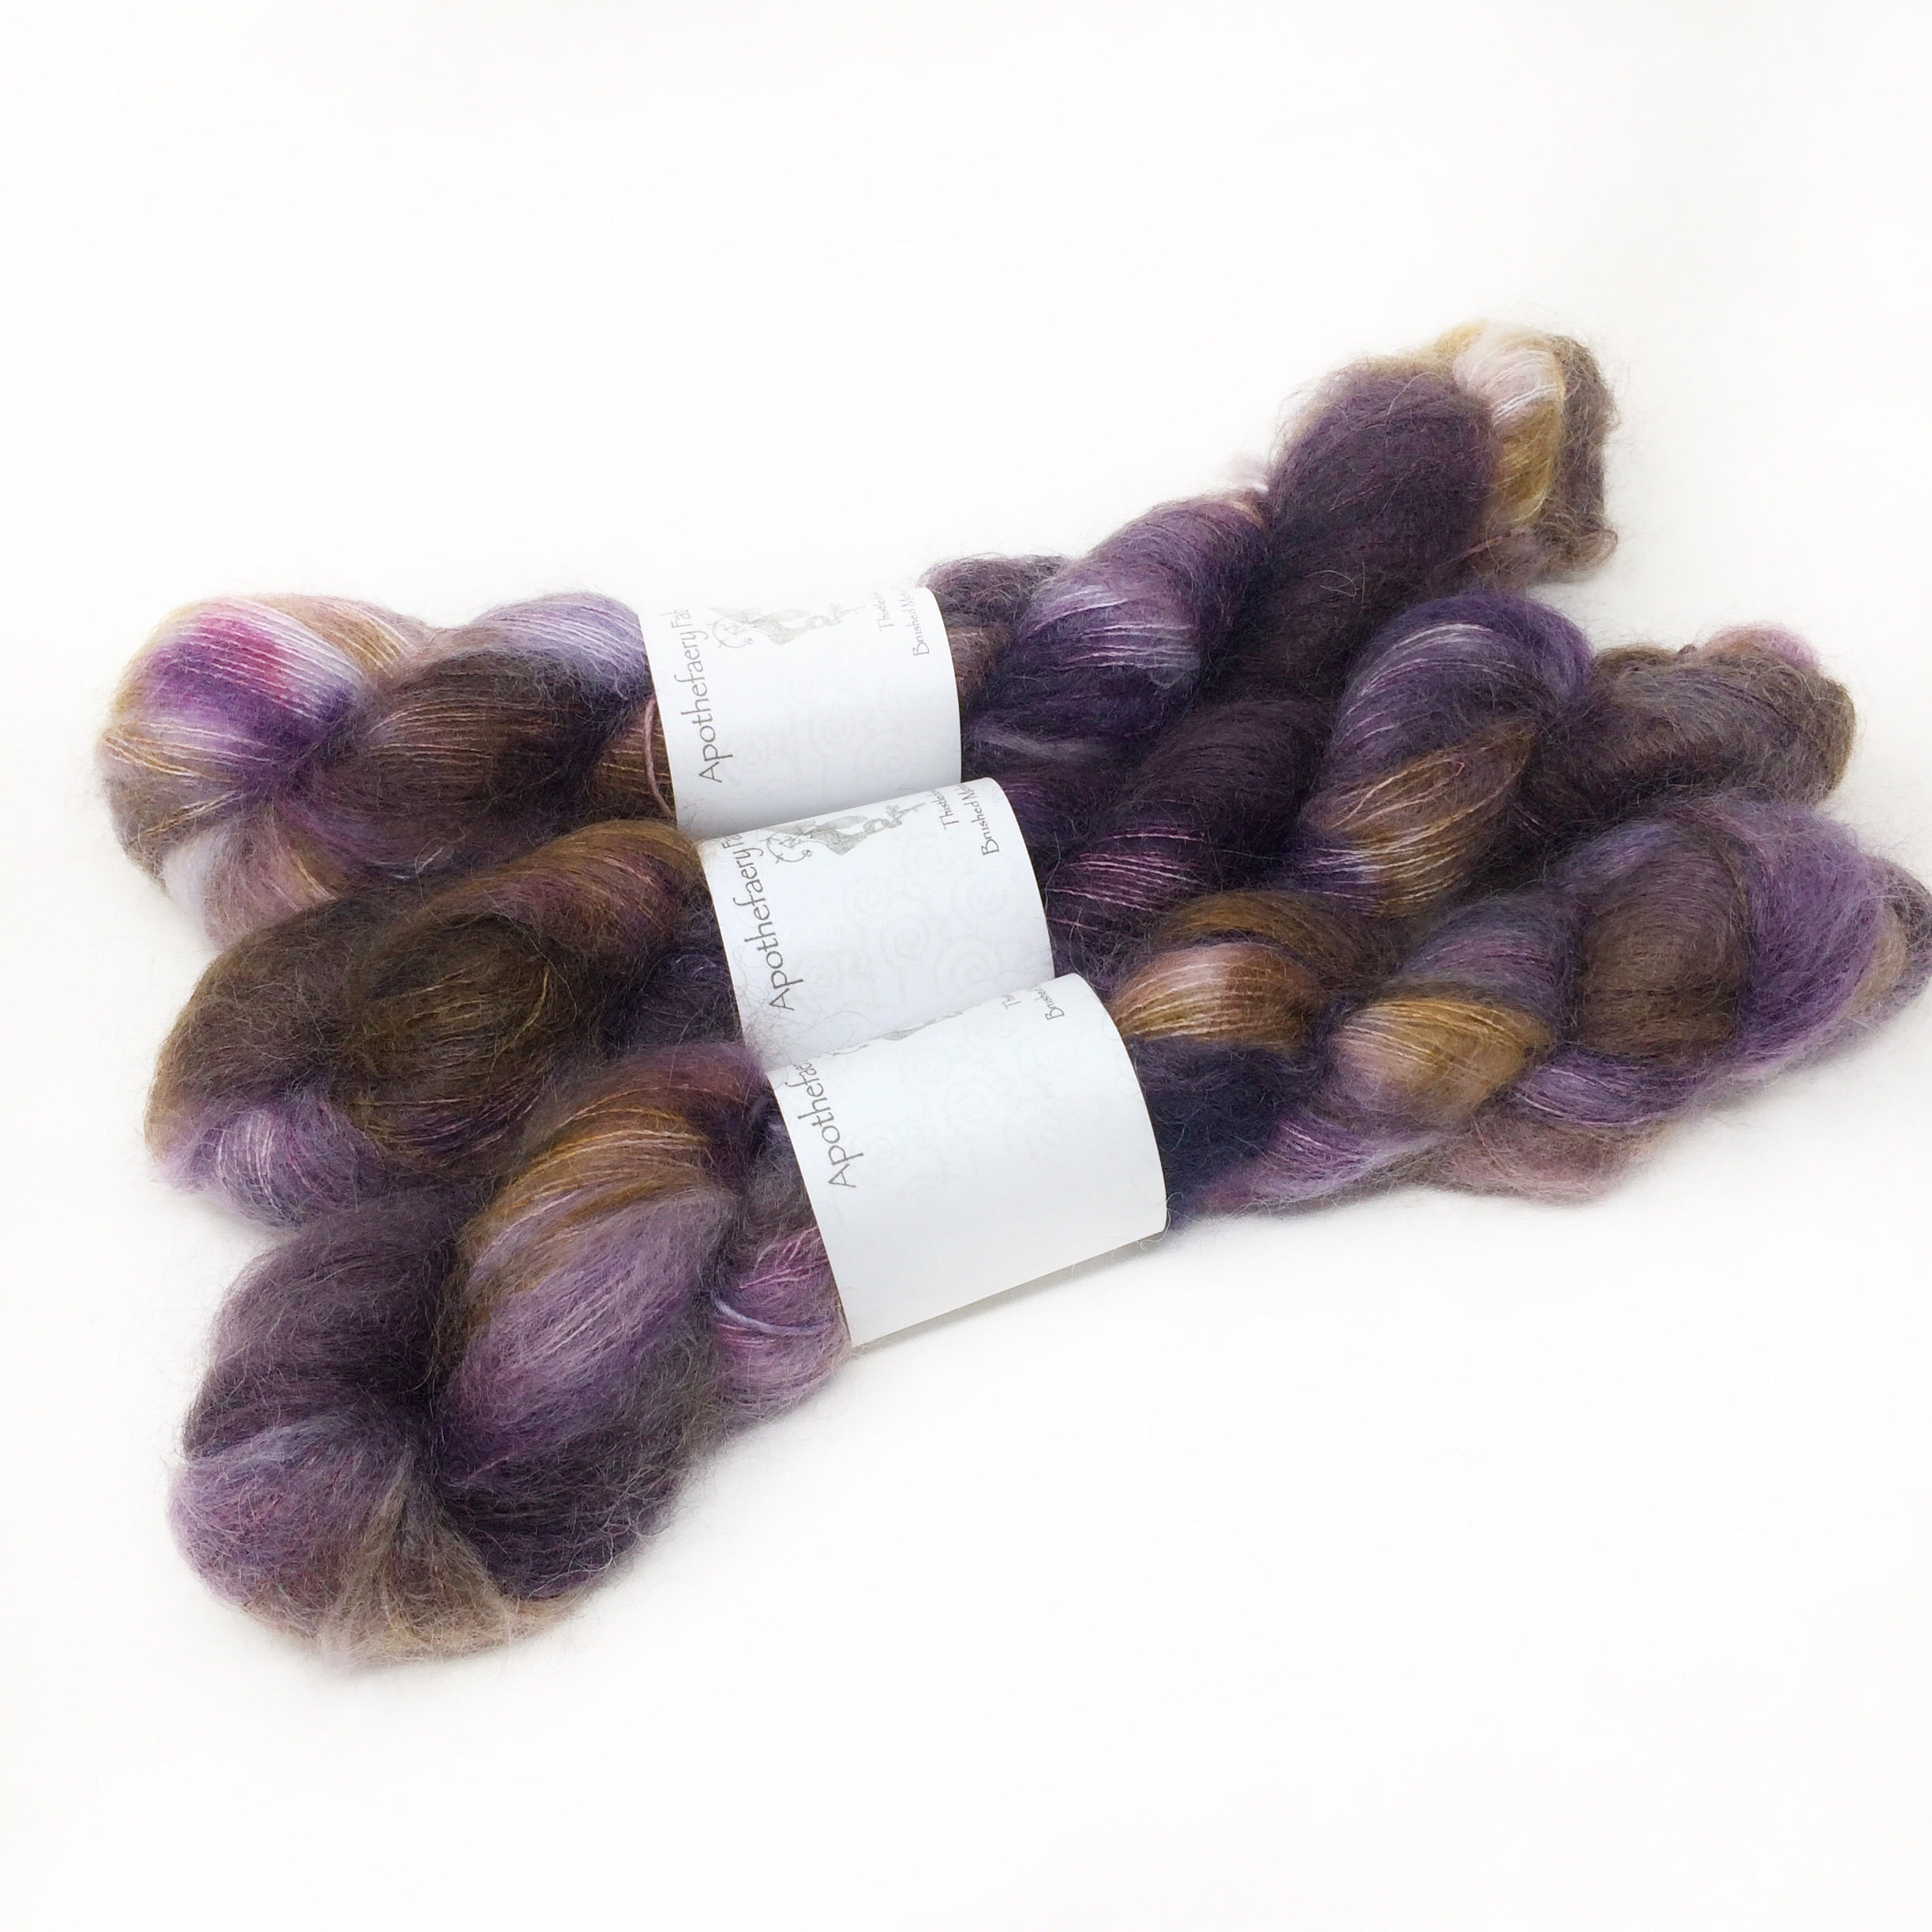 Olgra - brushed mohair and silk laceweight